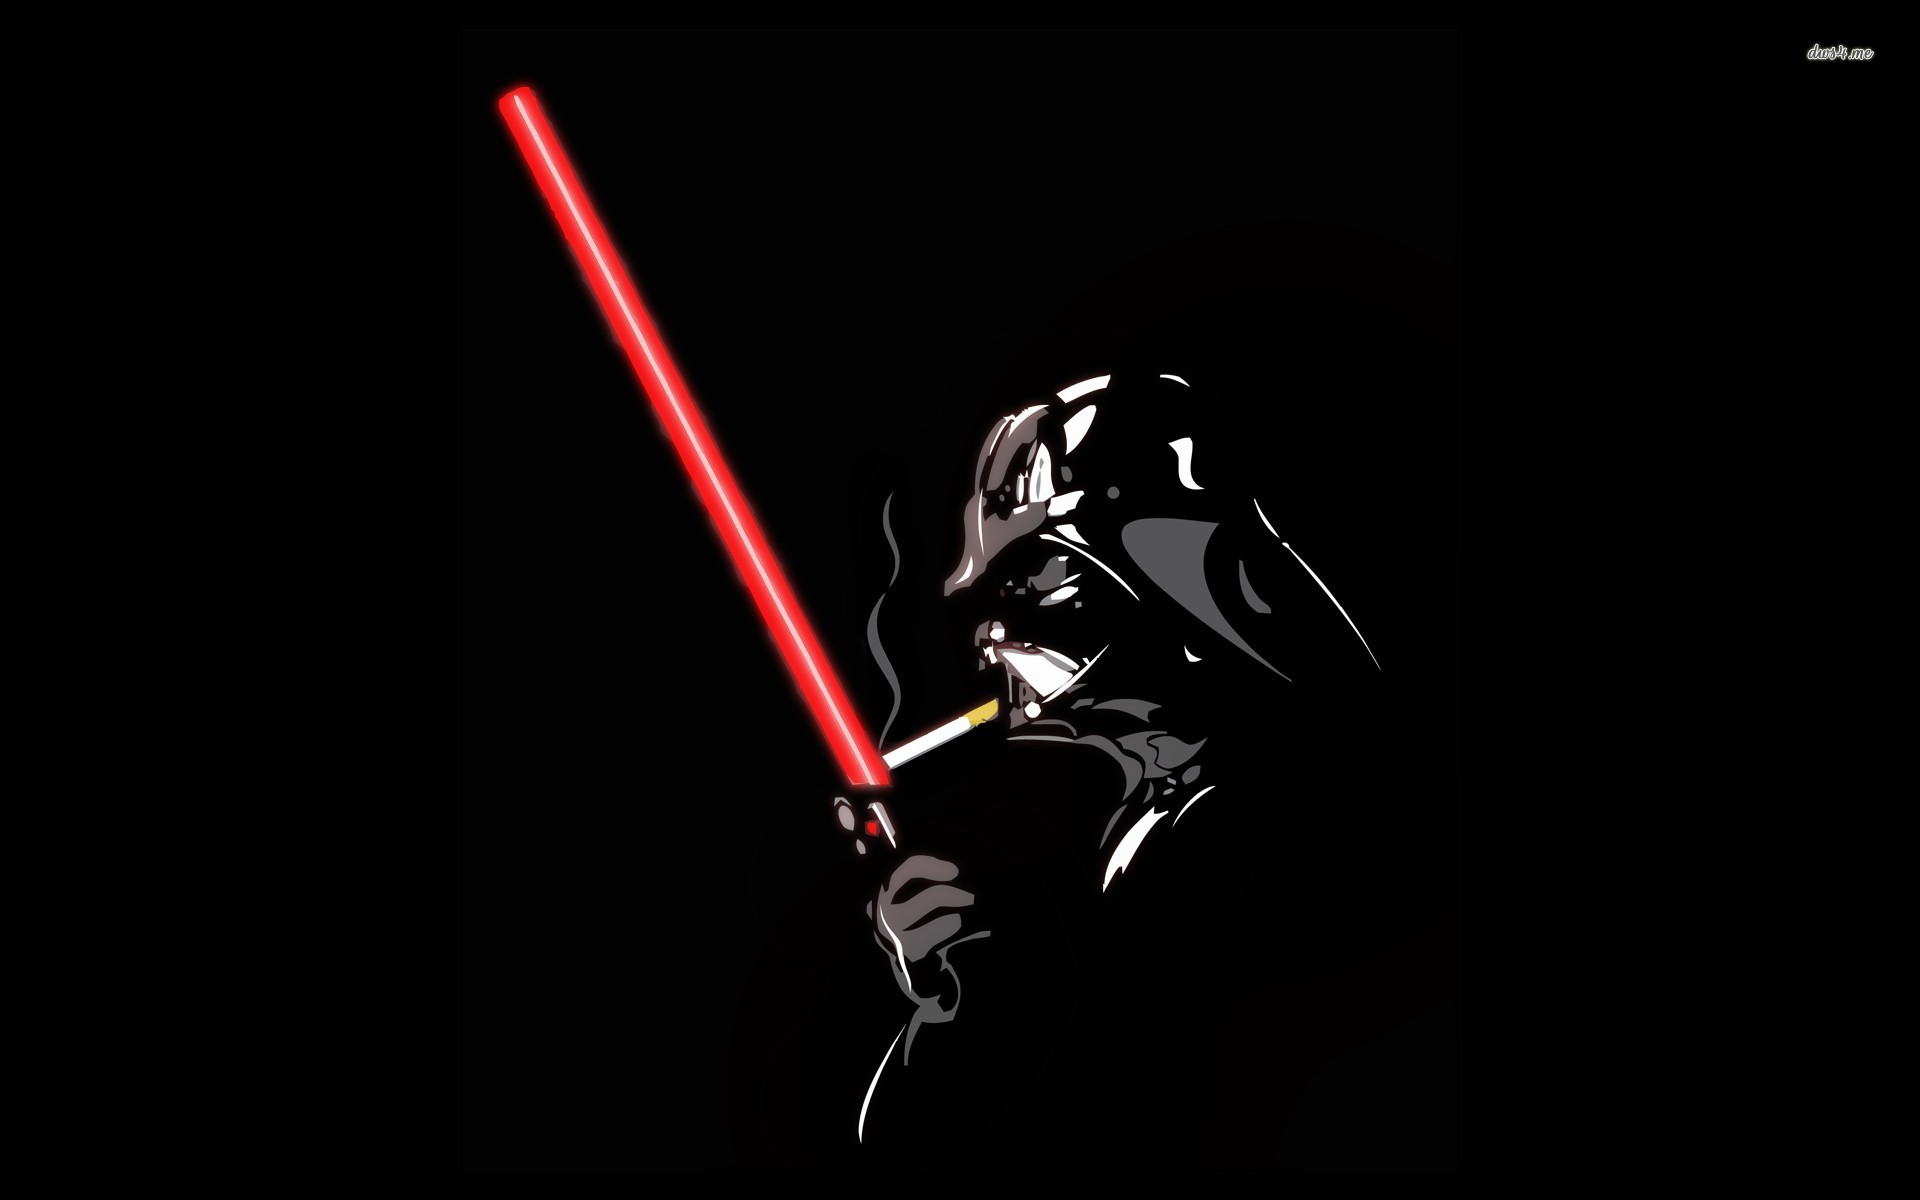 Best HD Darth Vader Wallpapers  feelgrPH 1920x1200